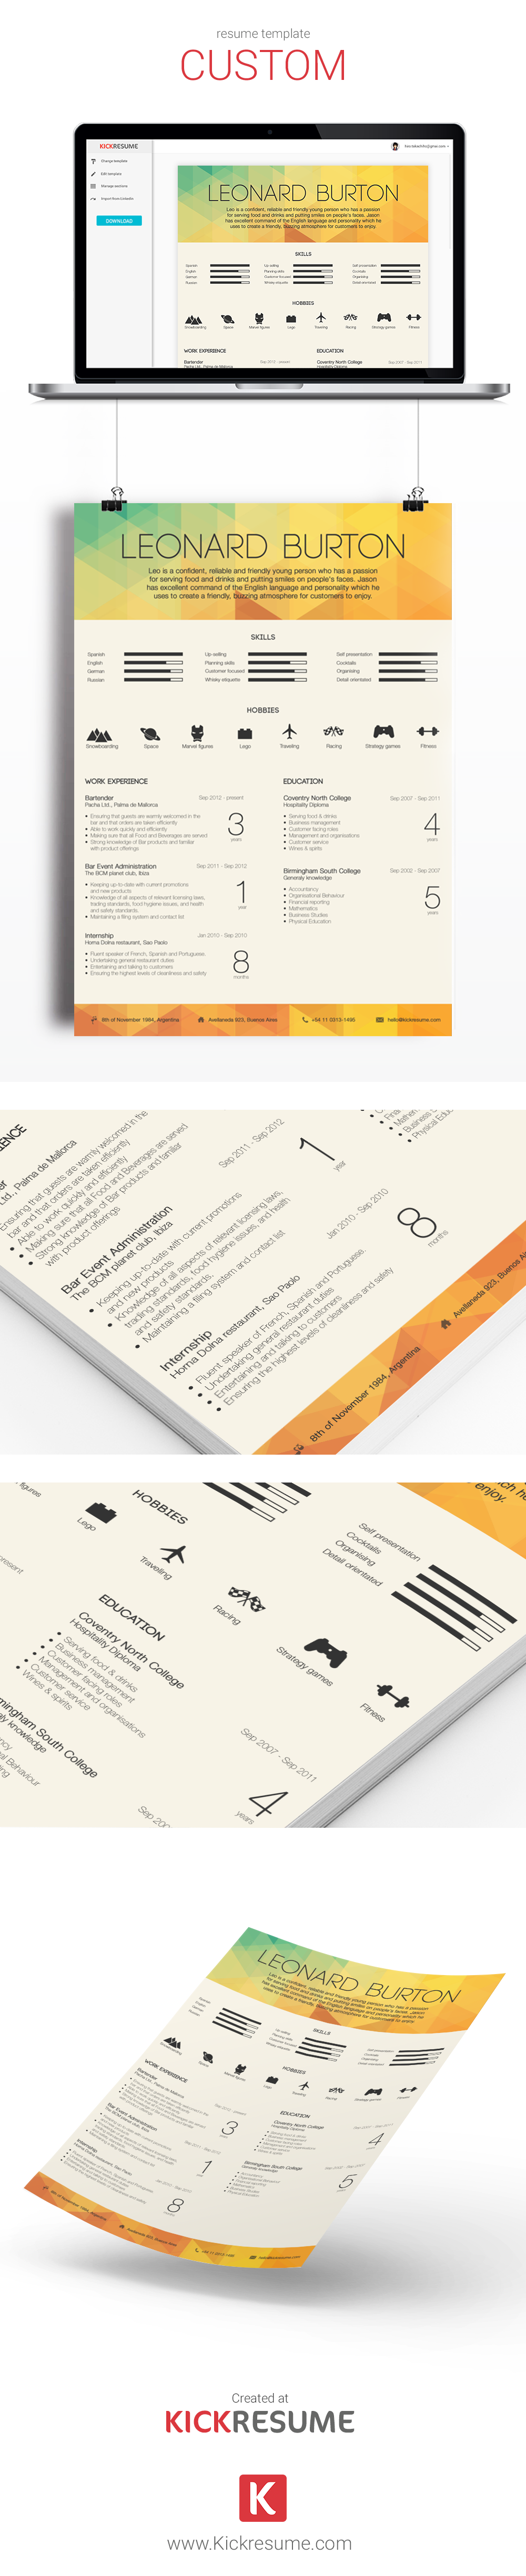 choose one of our templates created by designers and